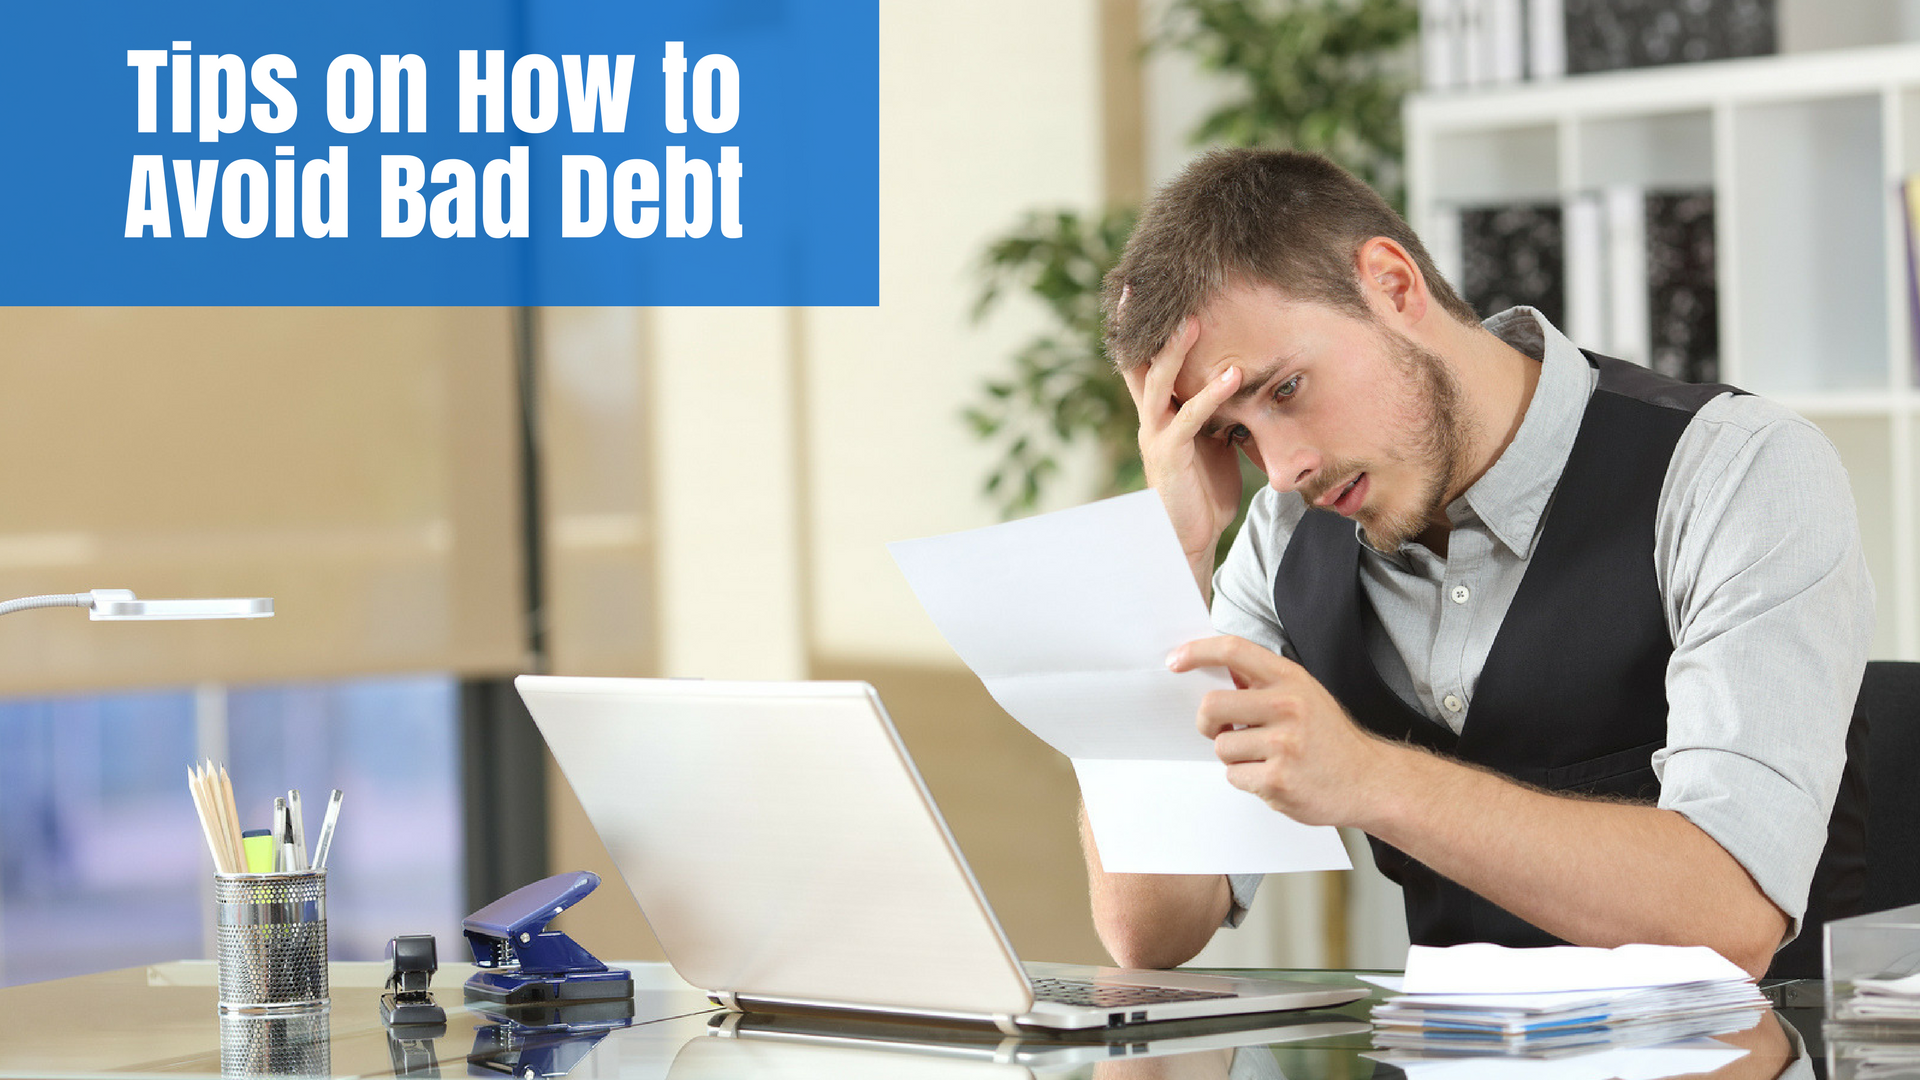 Tips on How to Avoid Bad Debt